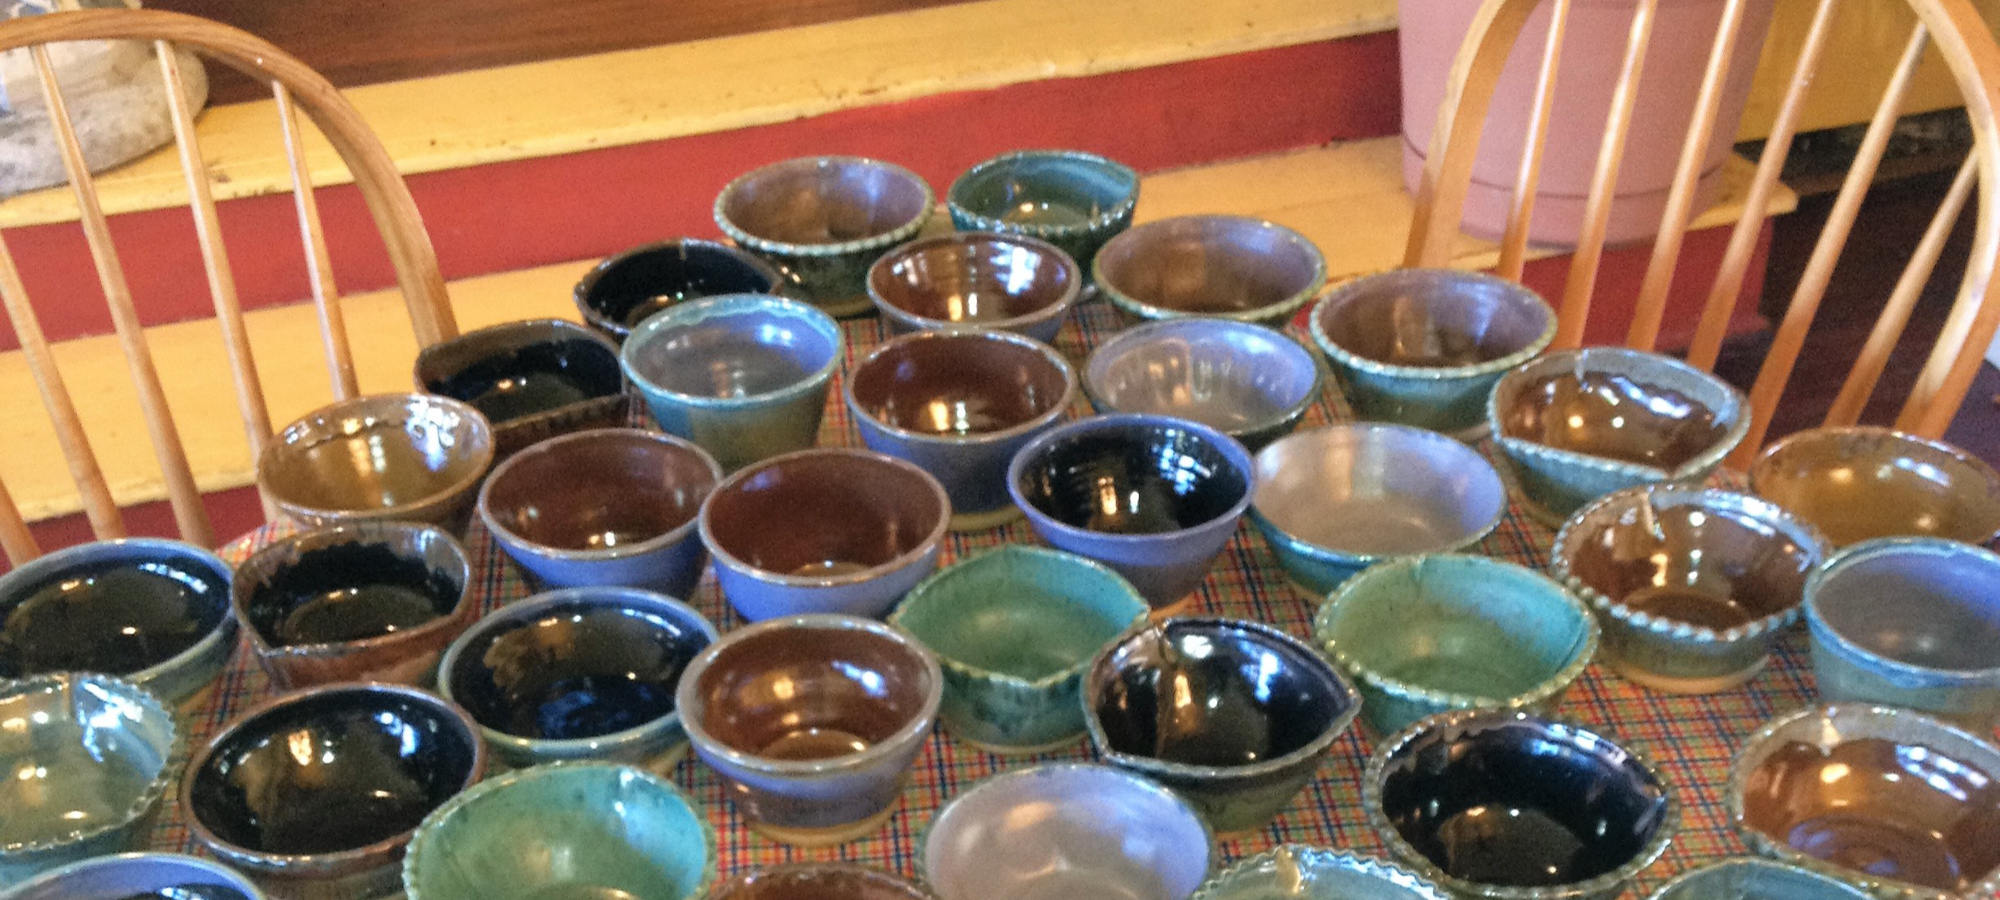 Bowls that take up entire table made at Artcroft